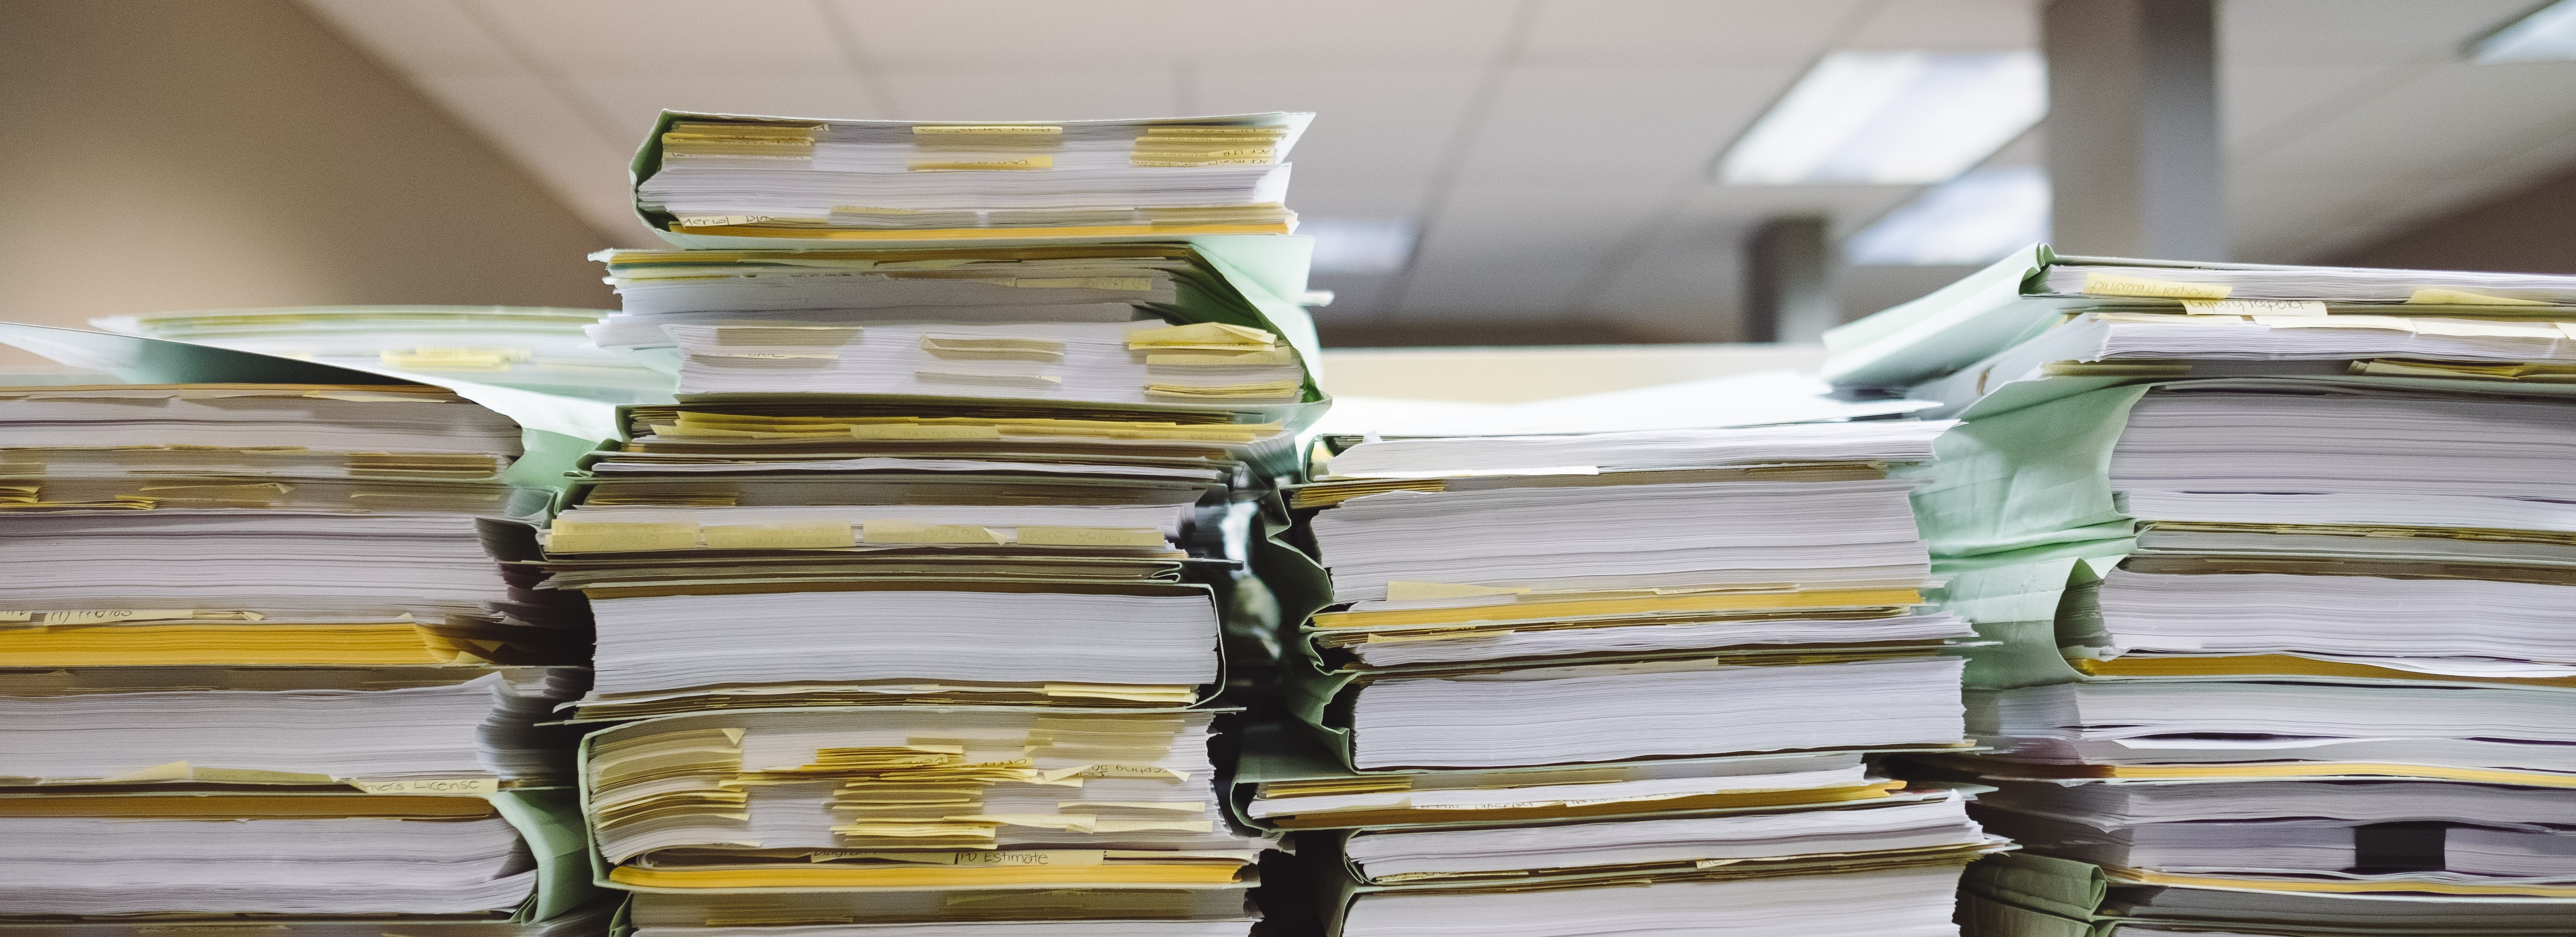 stacks-of-papers-and-files